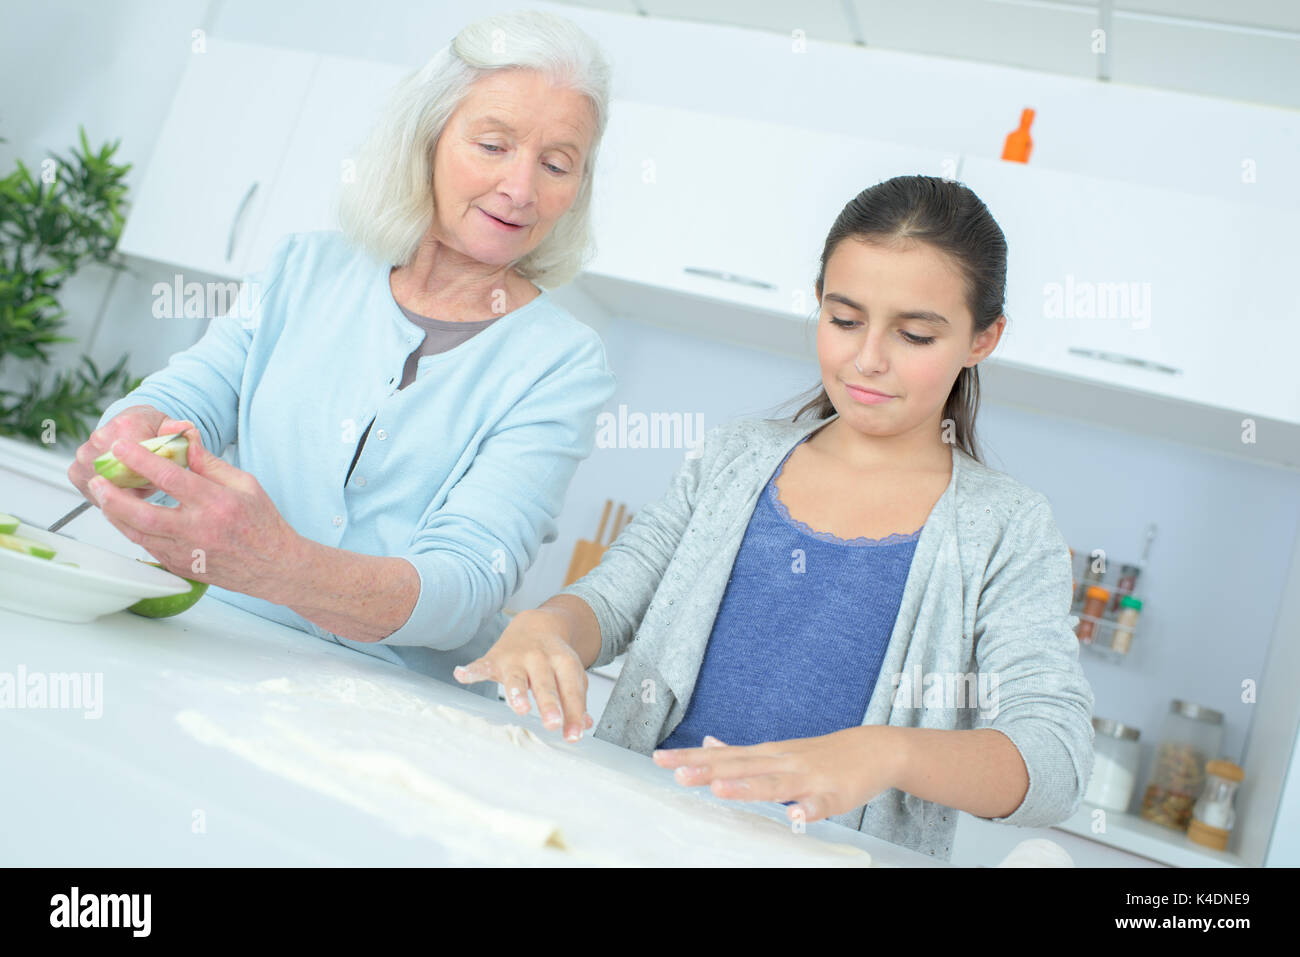 senior nanny cooking with child - Stock Image